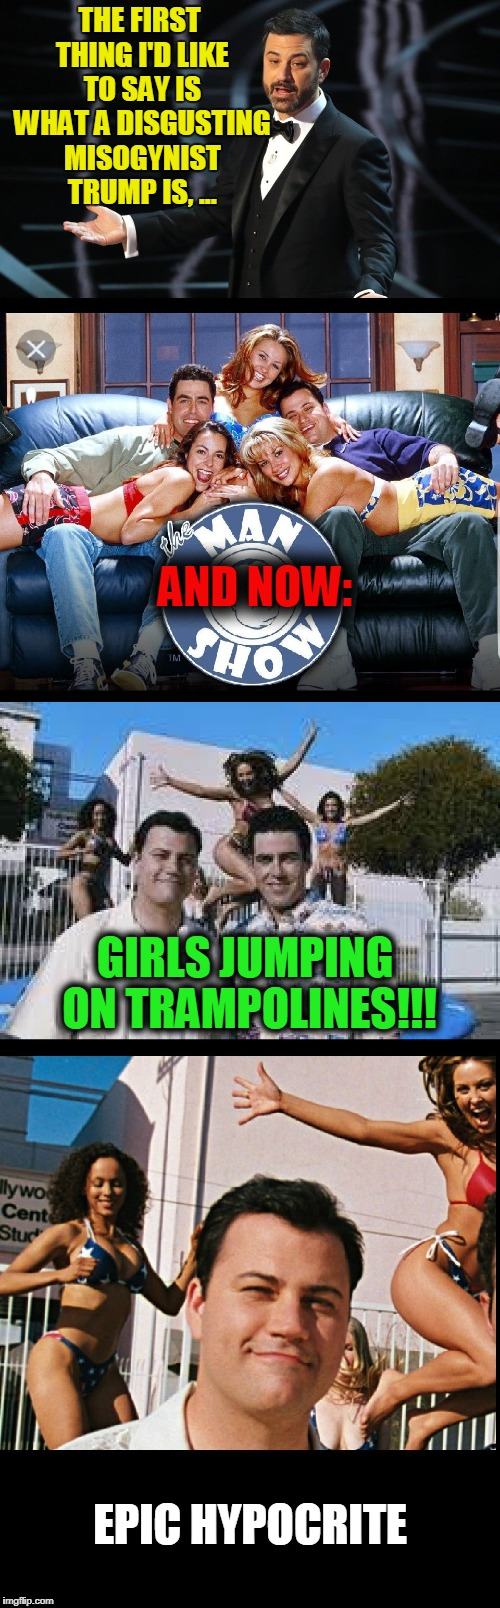 Hollywood Hypocrite | THE FIRST THING I'D LIKE TO SAY IS WHAT A DISGUSTING MISOGYNIST TRUMP IS, ... EPIC HYPOCRITE AND NOW: GIRLS JUMPING ON TRAMPOLINES!!! | image tagged in kimmel hypocrite,memes,funny,mxm | made w/ Imgflip meme maker